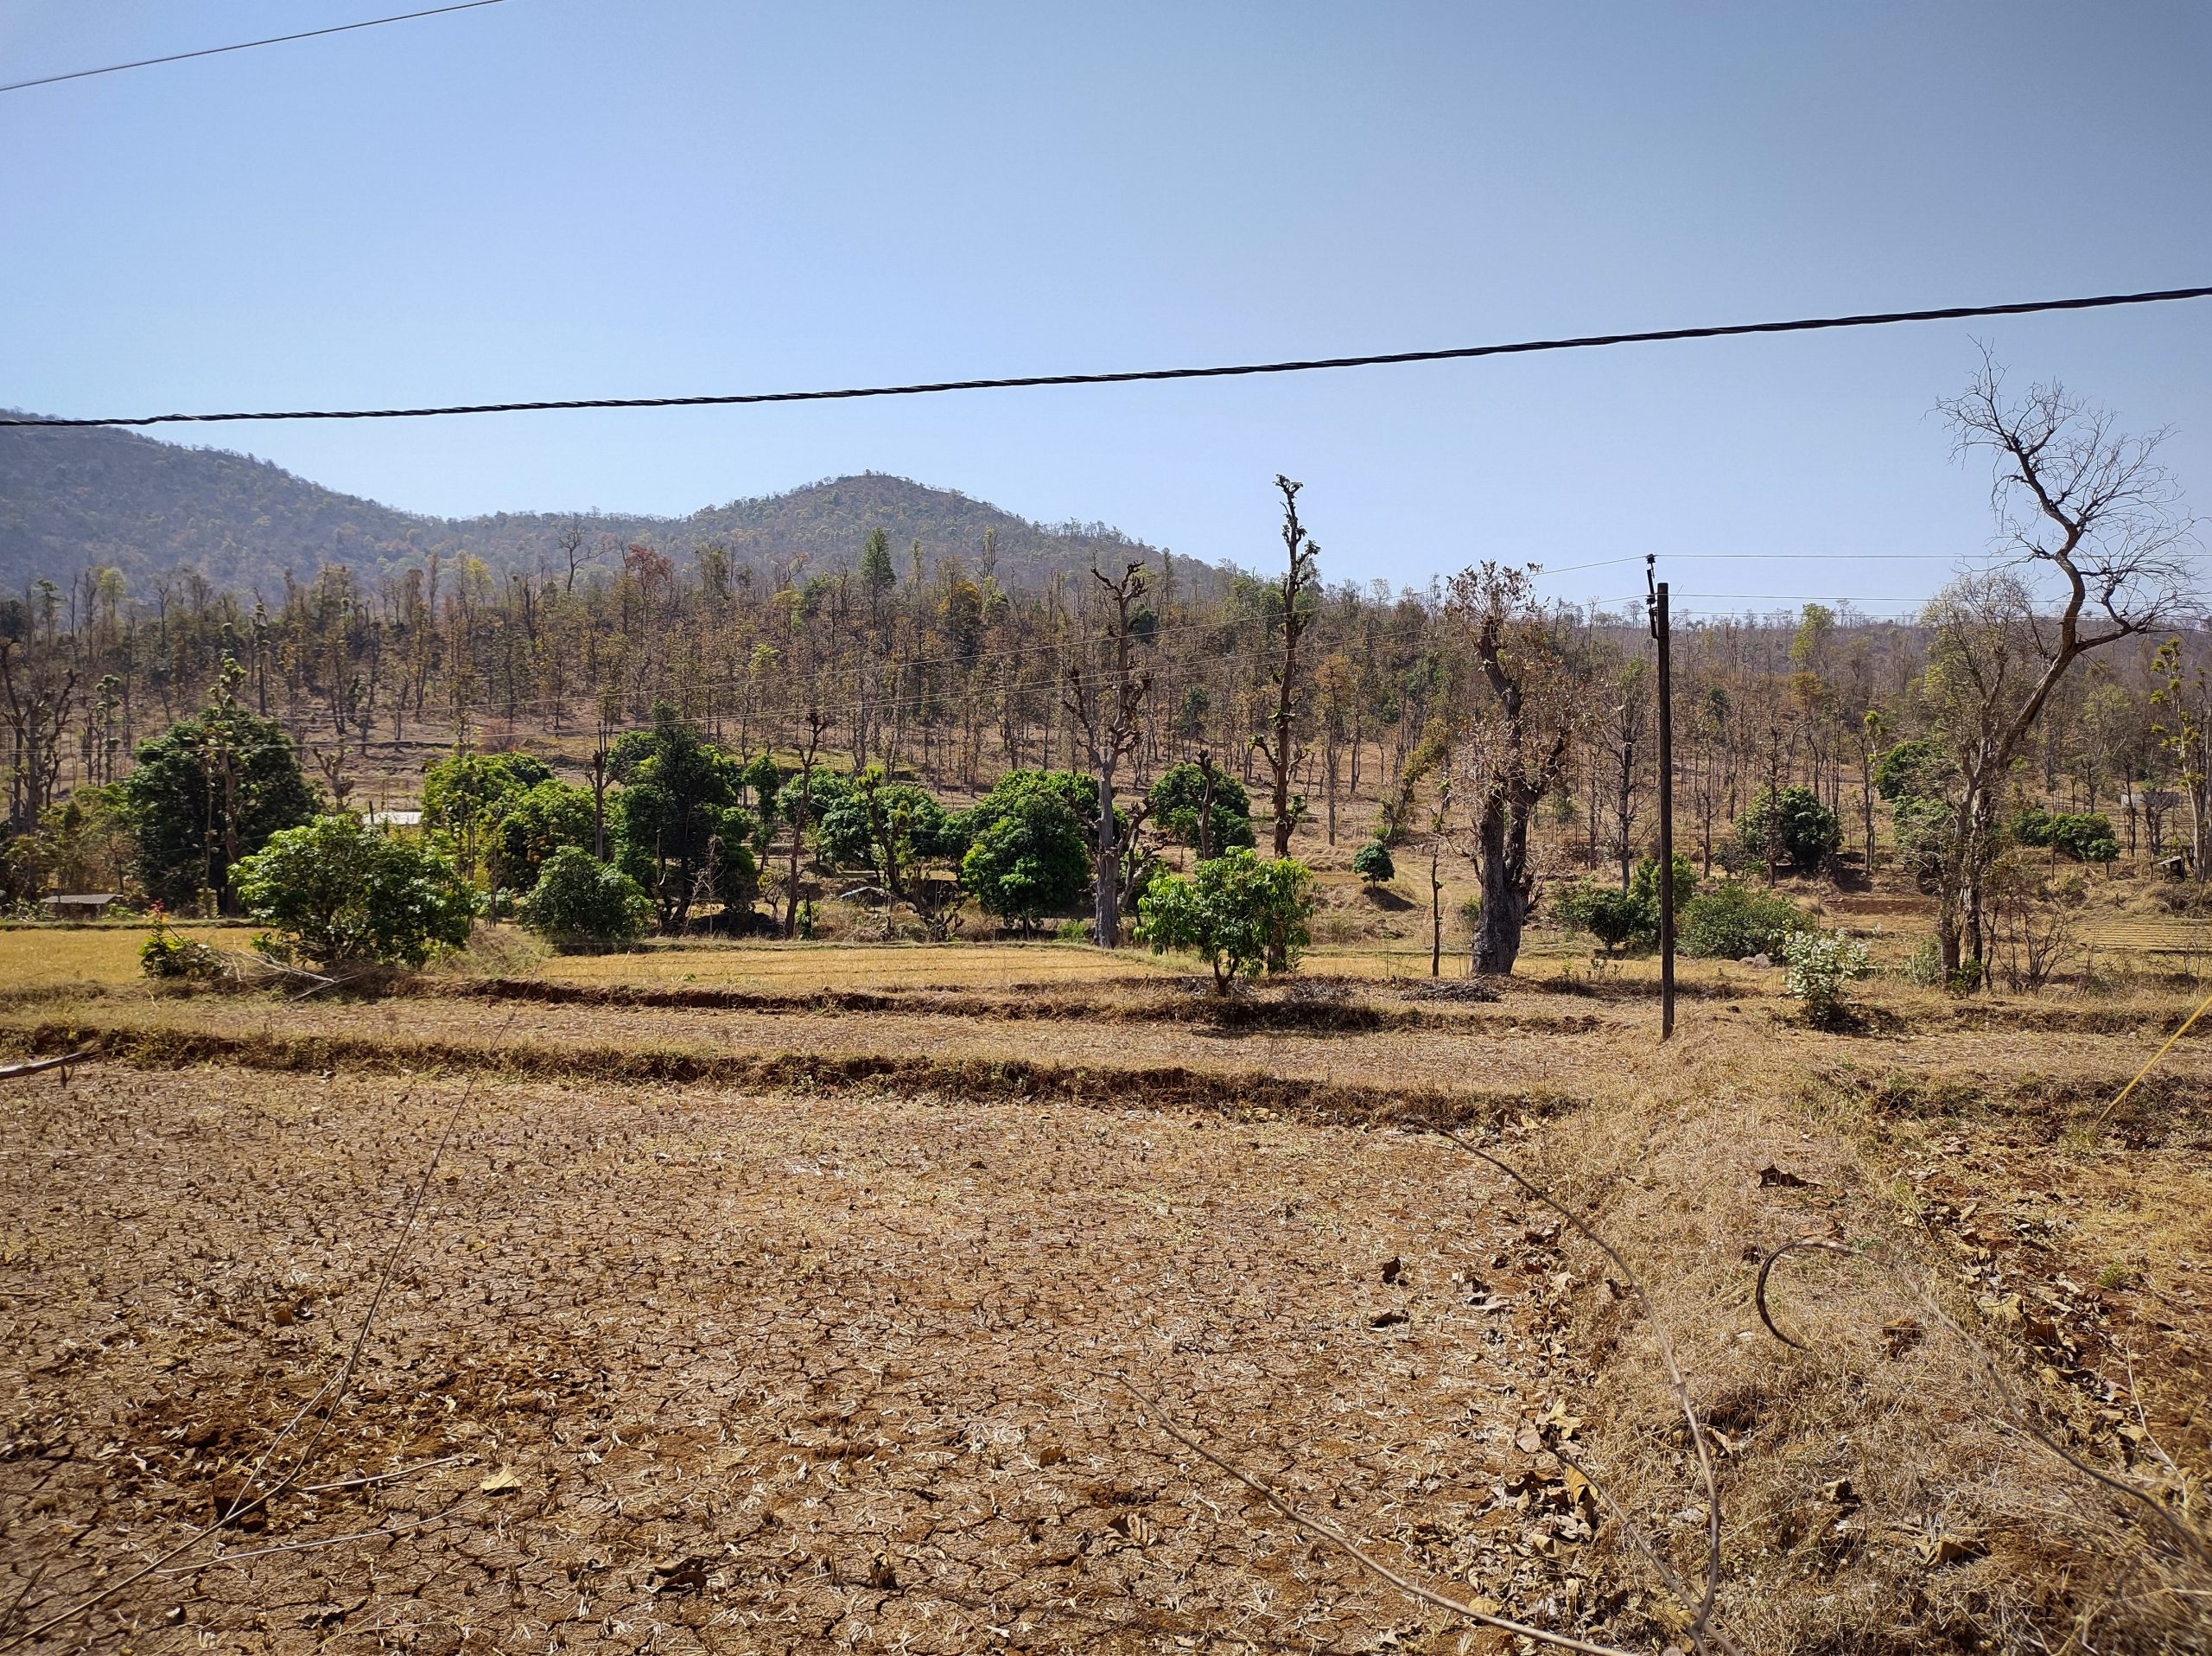 Photo 3_ A Dangi Landscape, where private lands also have commercial and fruit trees which brings in additional revenue.